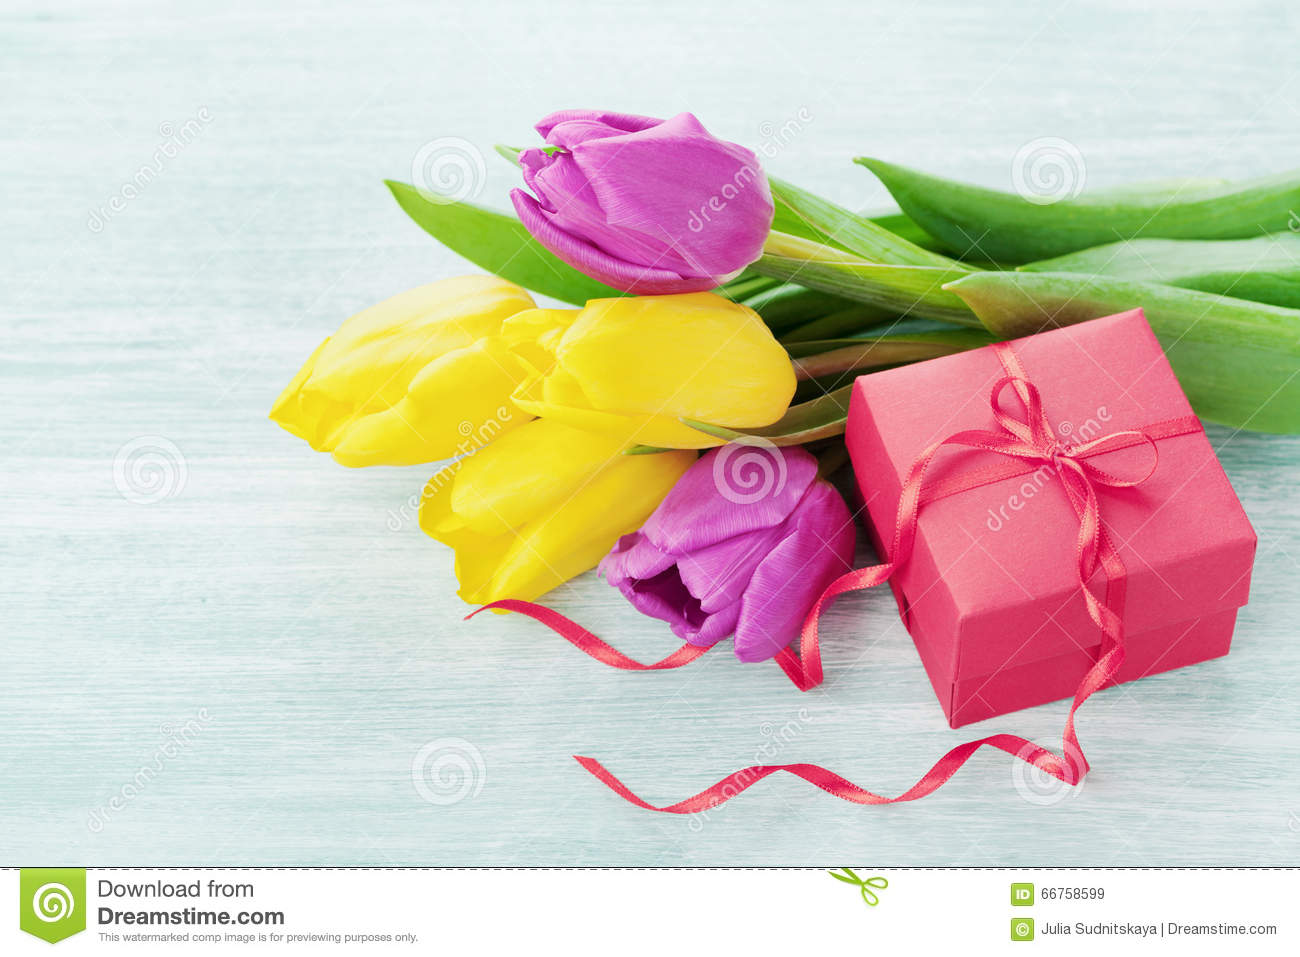 Spring Flowers And Gift Box Light Table Stock Image - Image of ... 982e97d791